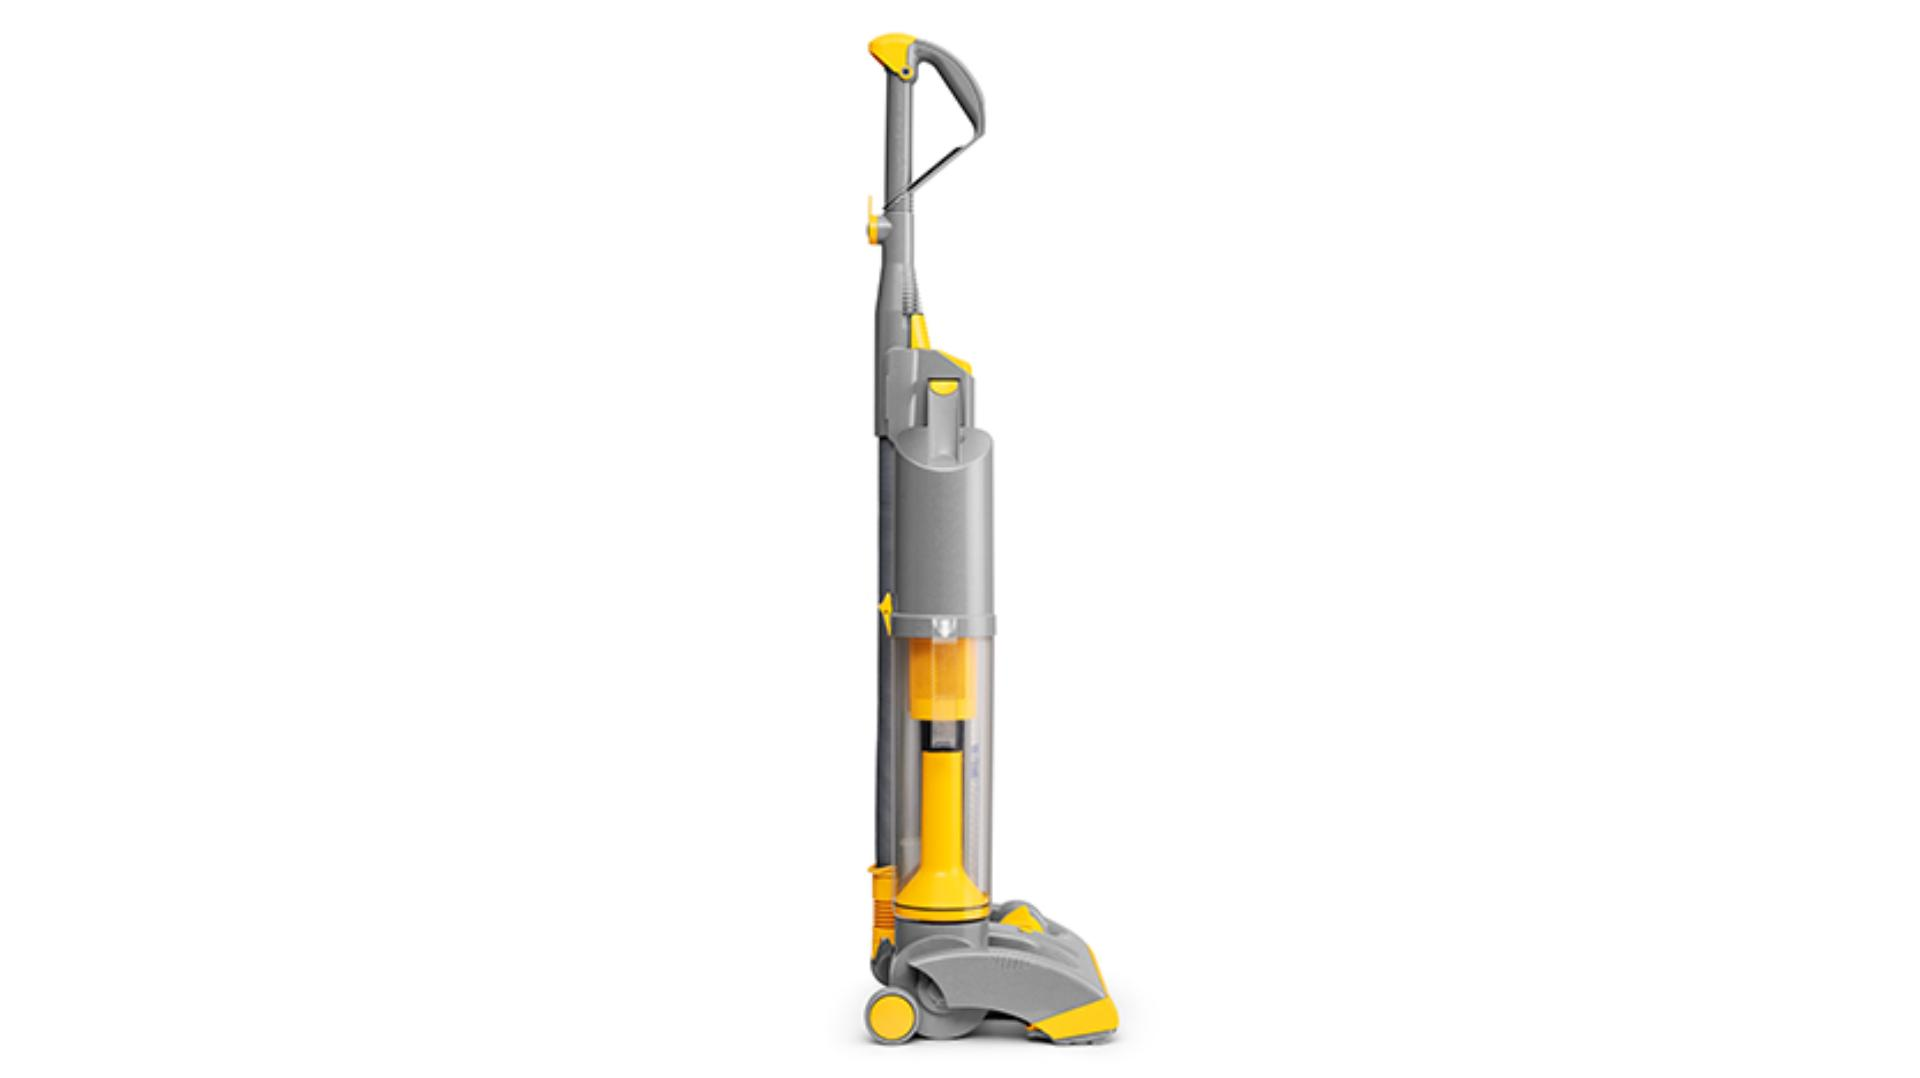 Side view of DC03 upright vacuum